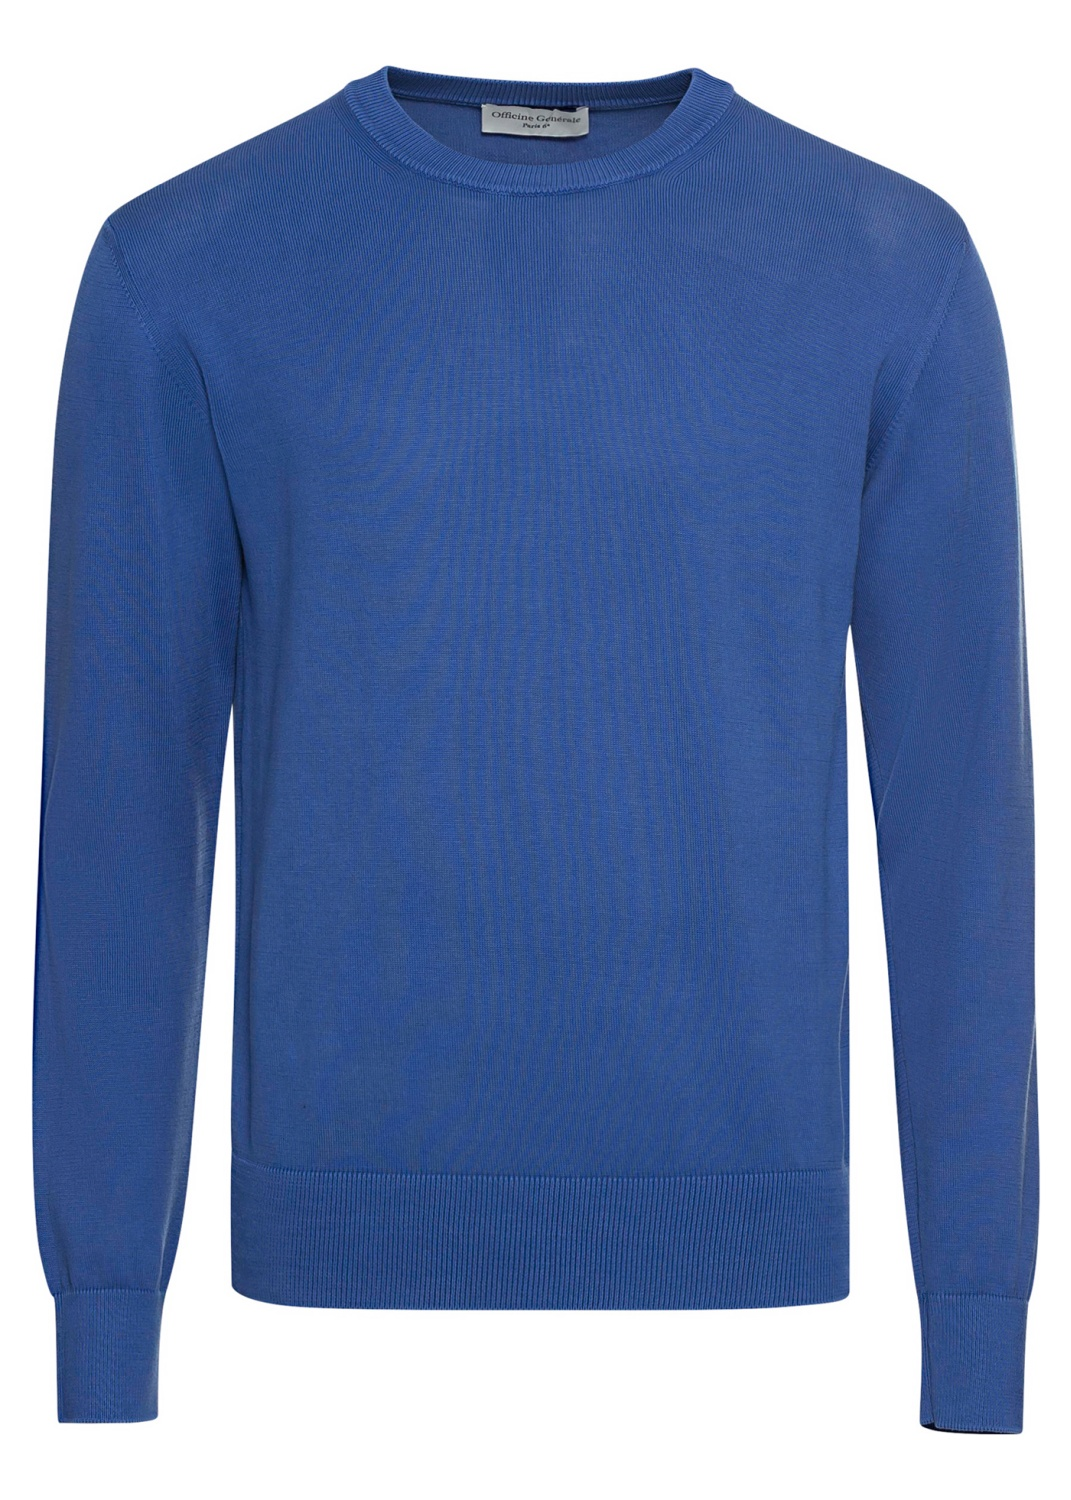 NEILS CNECK IT CO OLD DYED image number 0